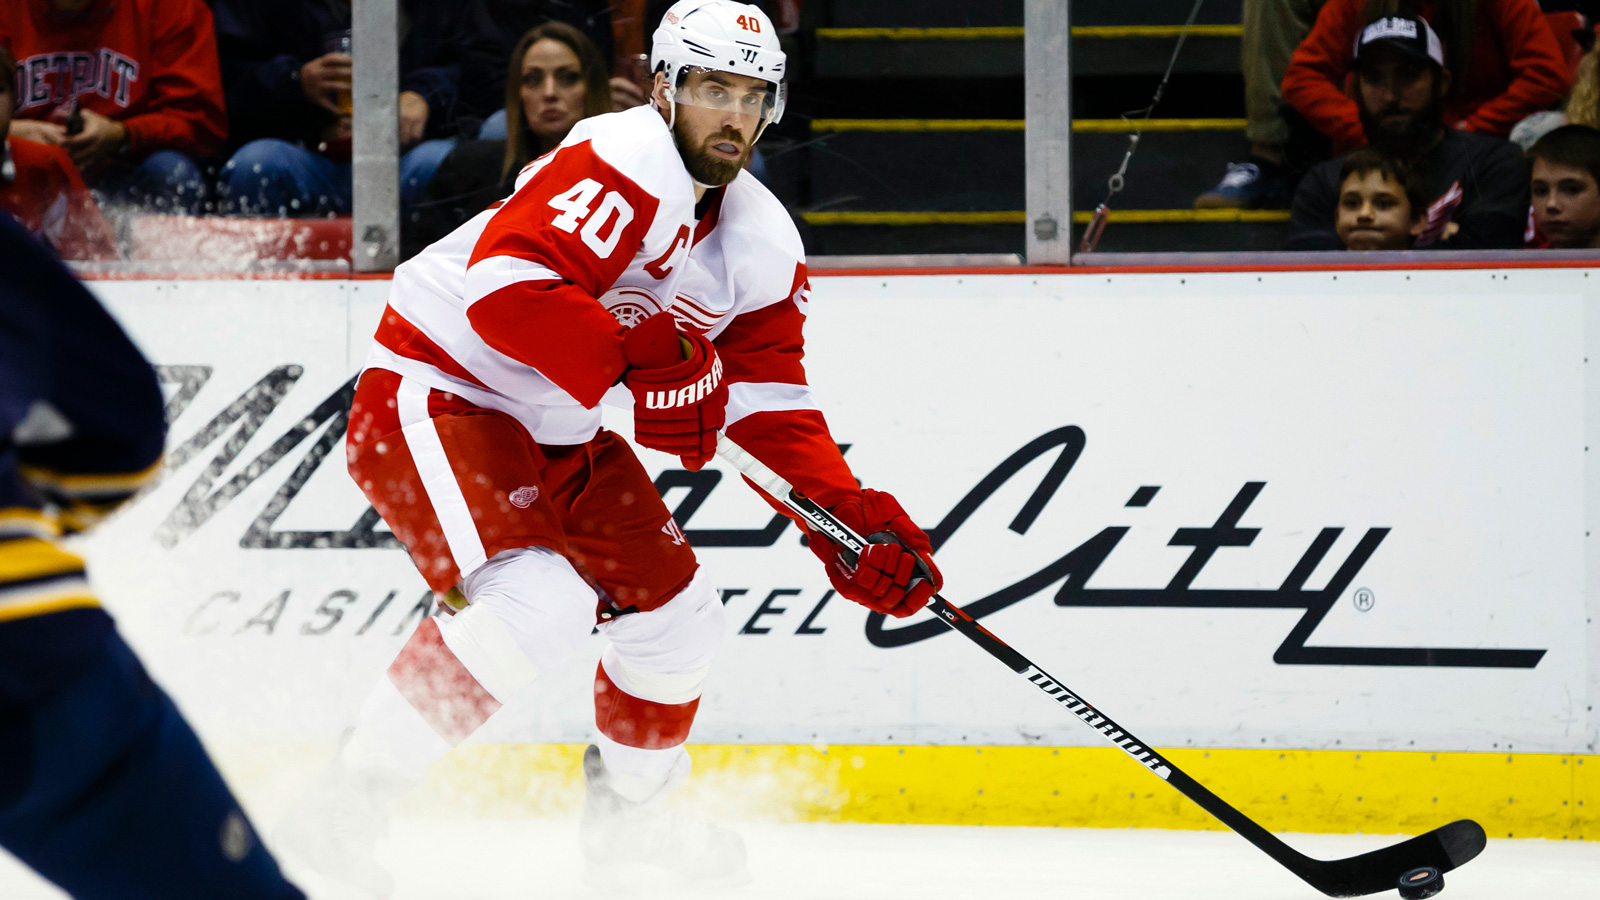 Wings hope to jump out to quick start against Canucks